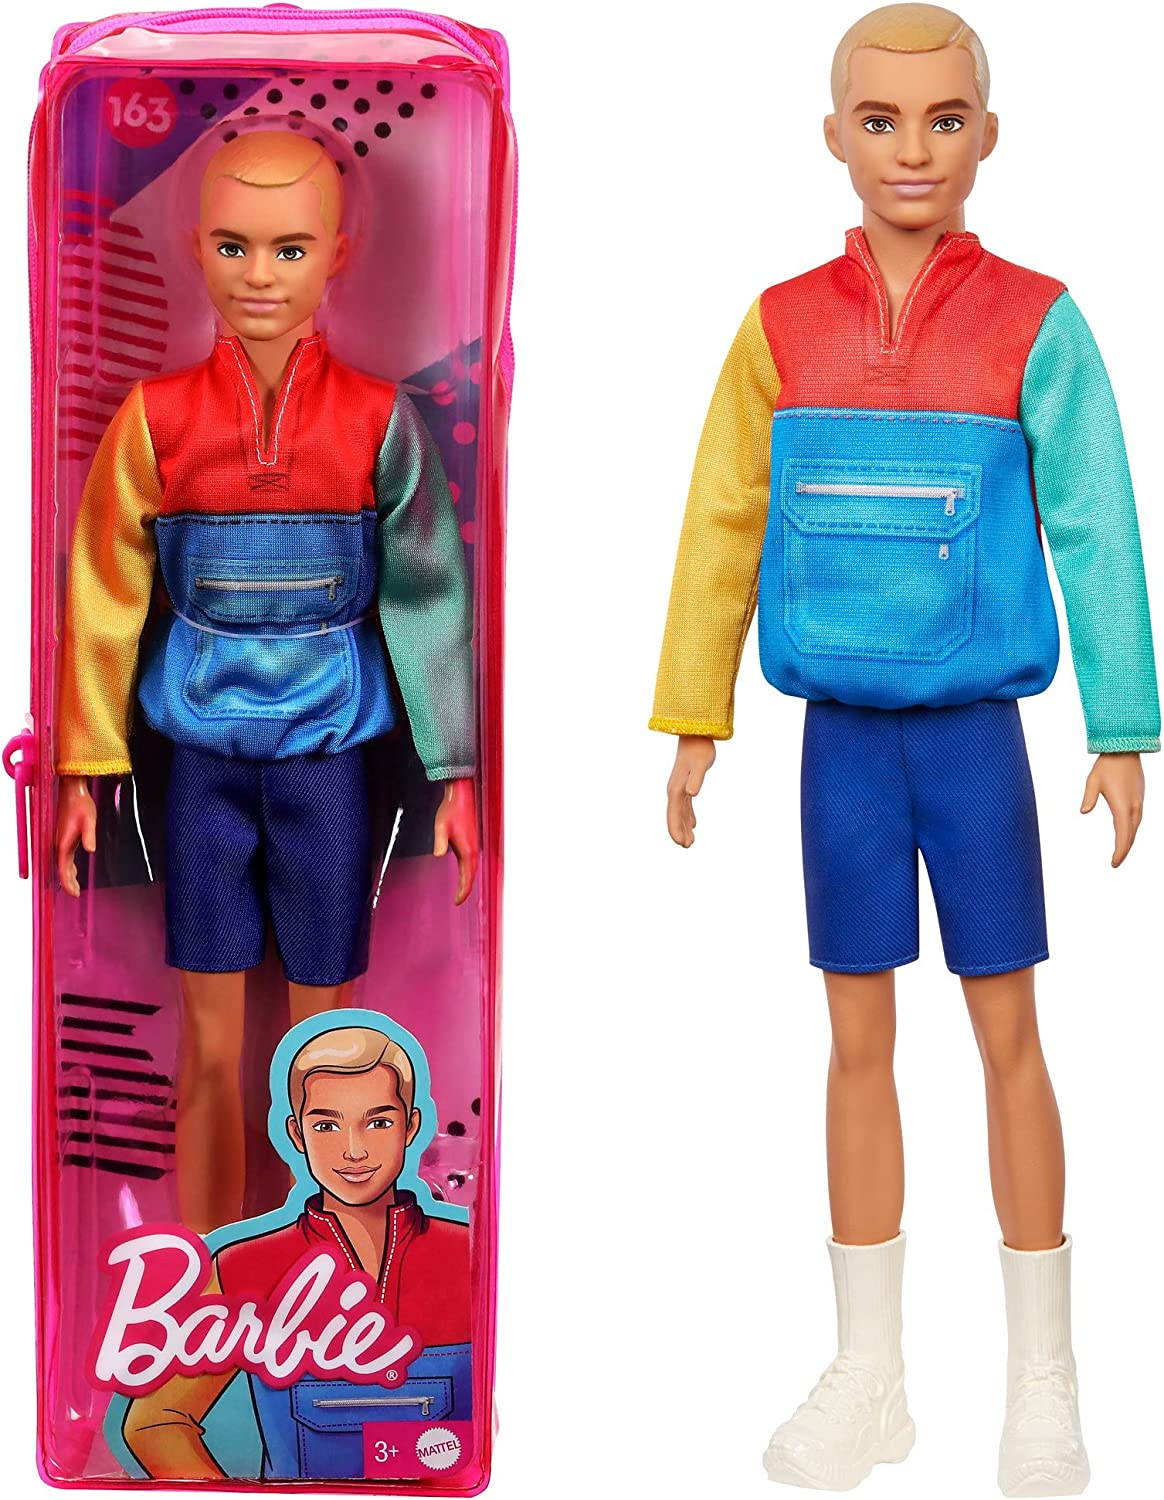 Barbie Ken Fashionistas Doll #163, Slender with Sculpted Blonde Hair Wearing Color-Blocked Jacket-Style Top, Blue Shorts & White Boots, Toy for Kids 3 to 8 Years Old